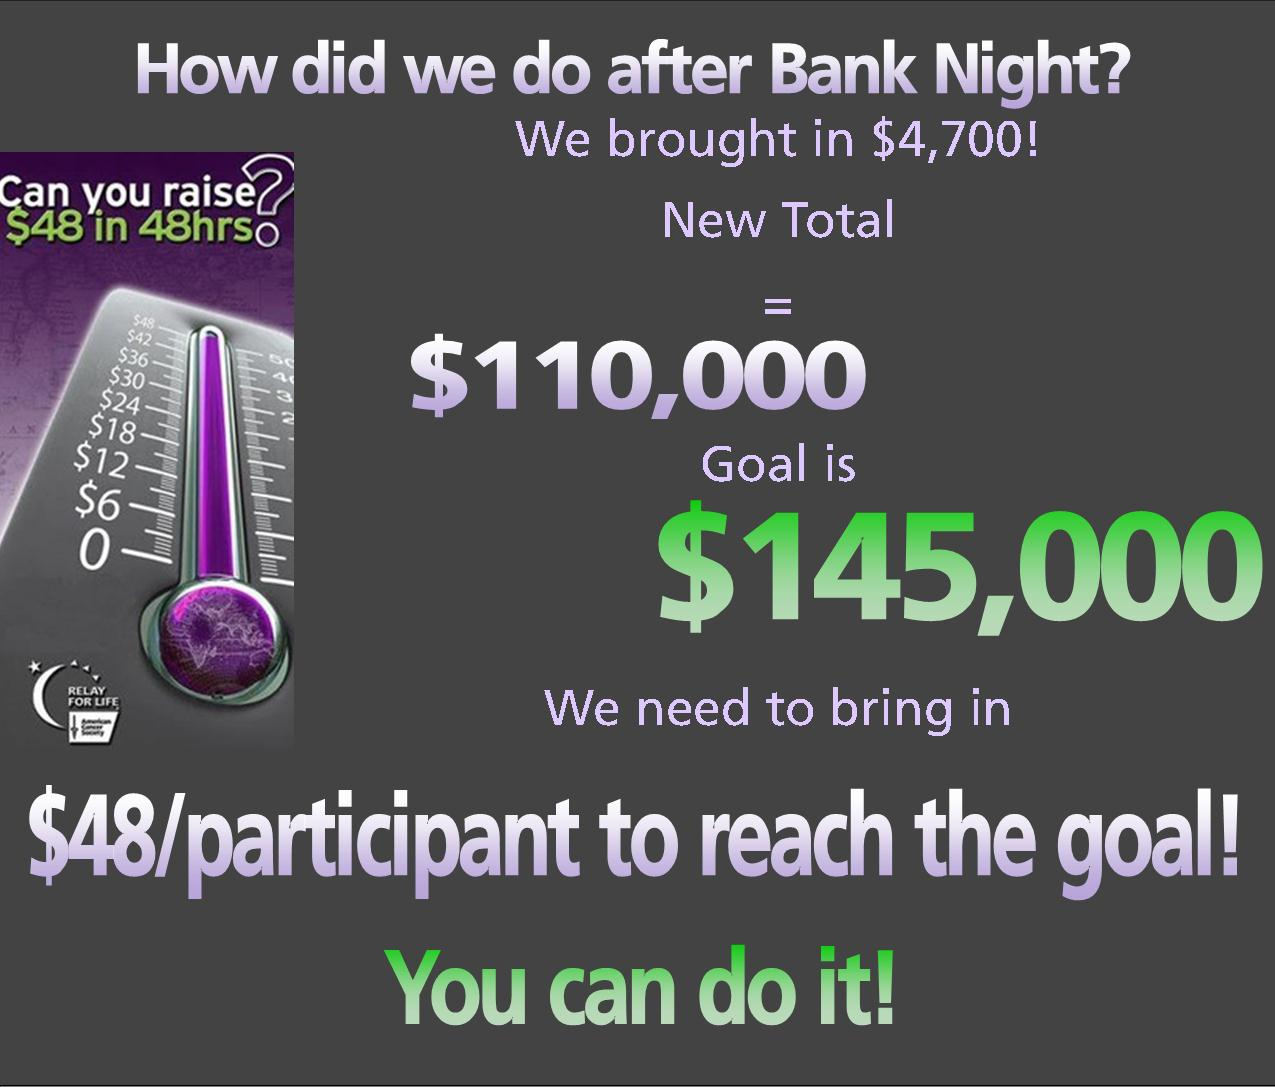 Total Raised after Bank Night